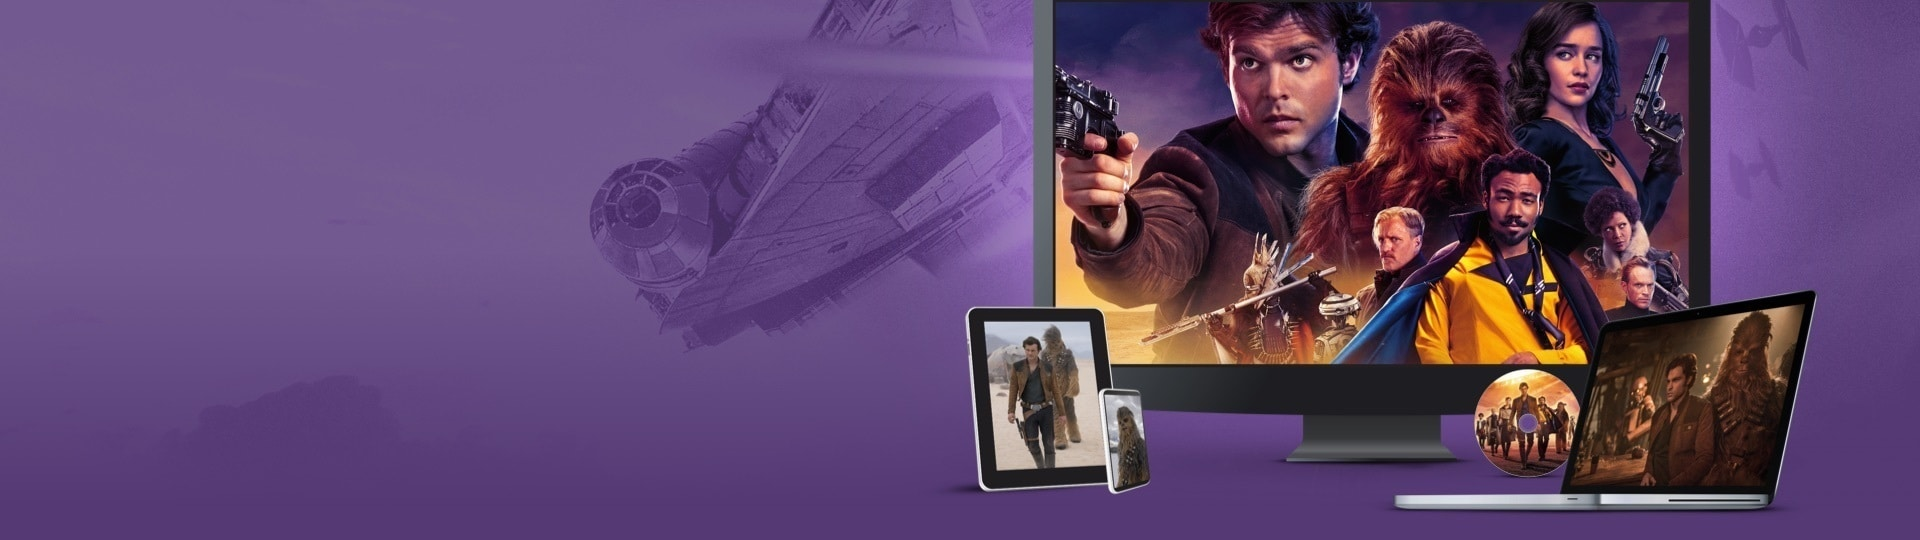 Solo: A Star Wars Story | Home Ents